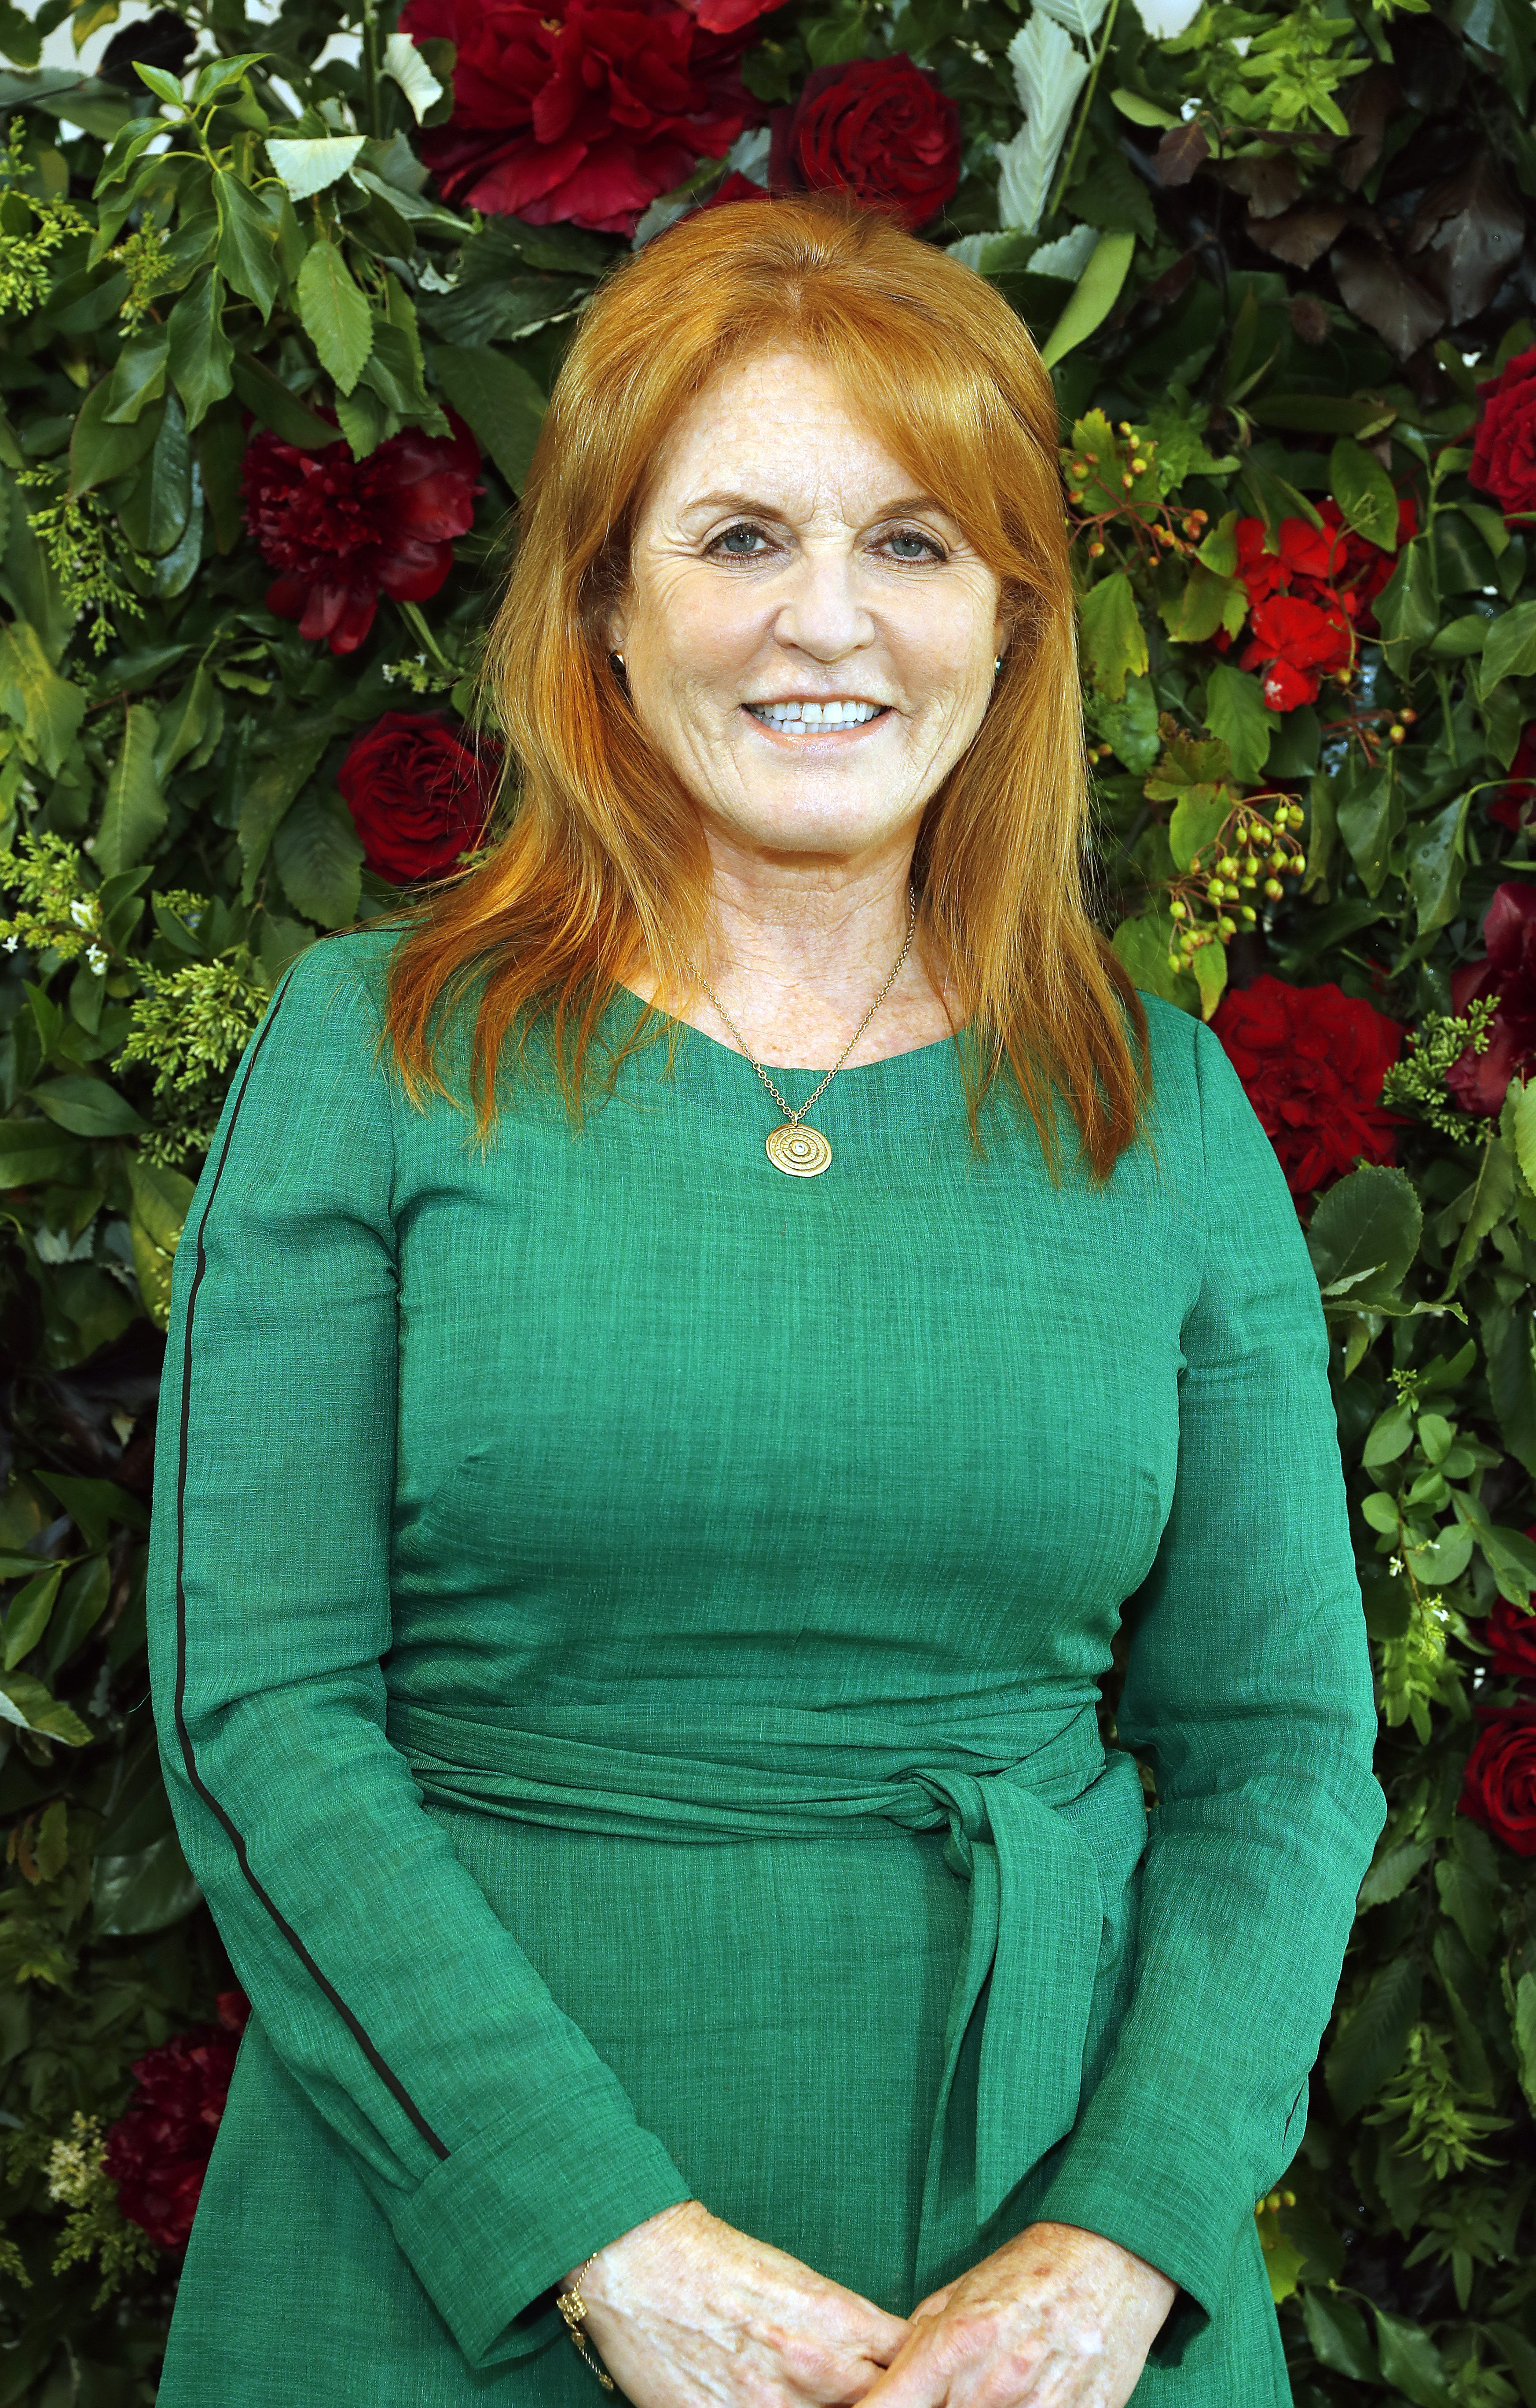 Sarah Ferguson, Duchess of York attends the British Heart Foundation's 'Bias And Biology' panel at Mortimer House on June 25, 2019 in London, England. | Photo: Getty Images